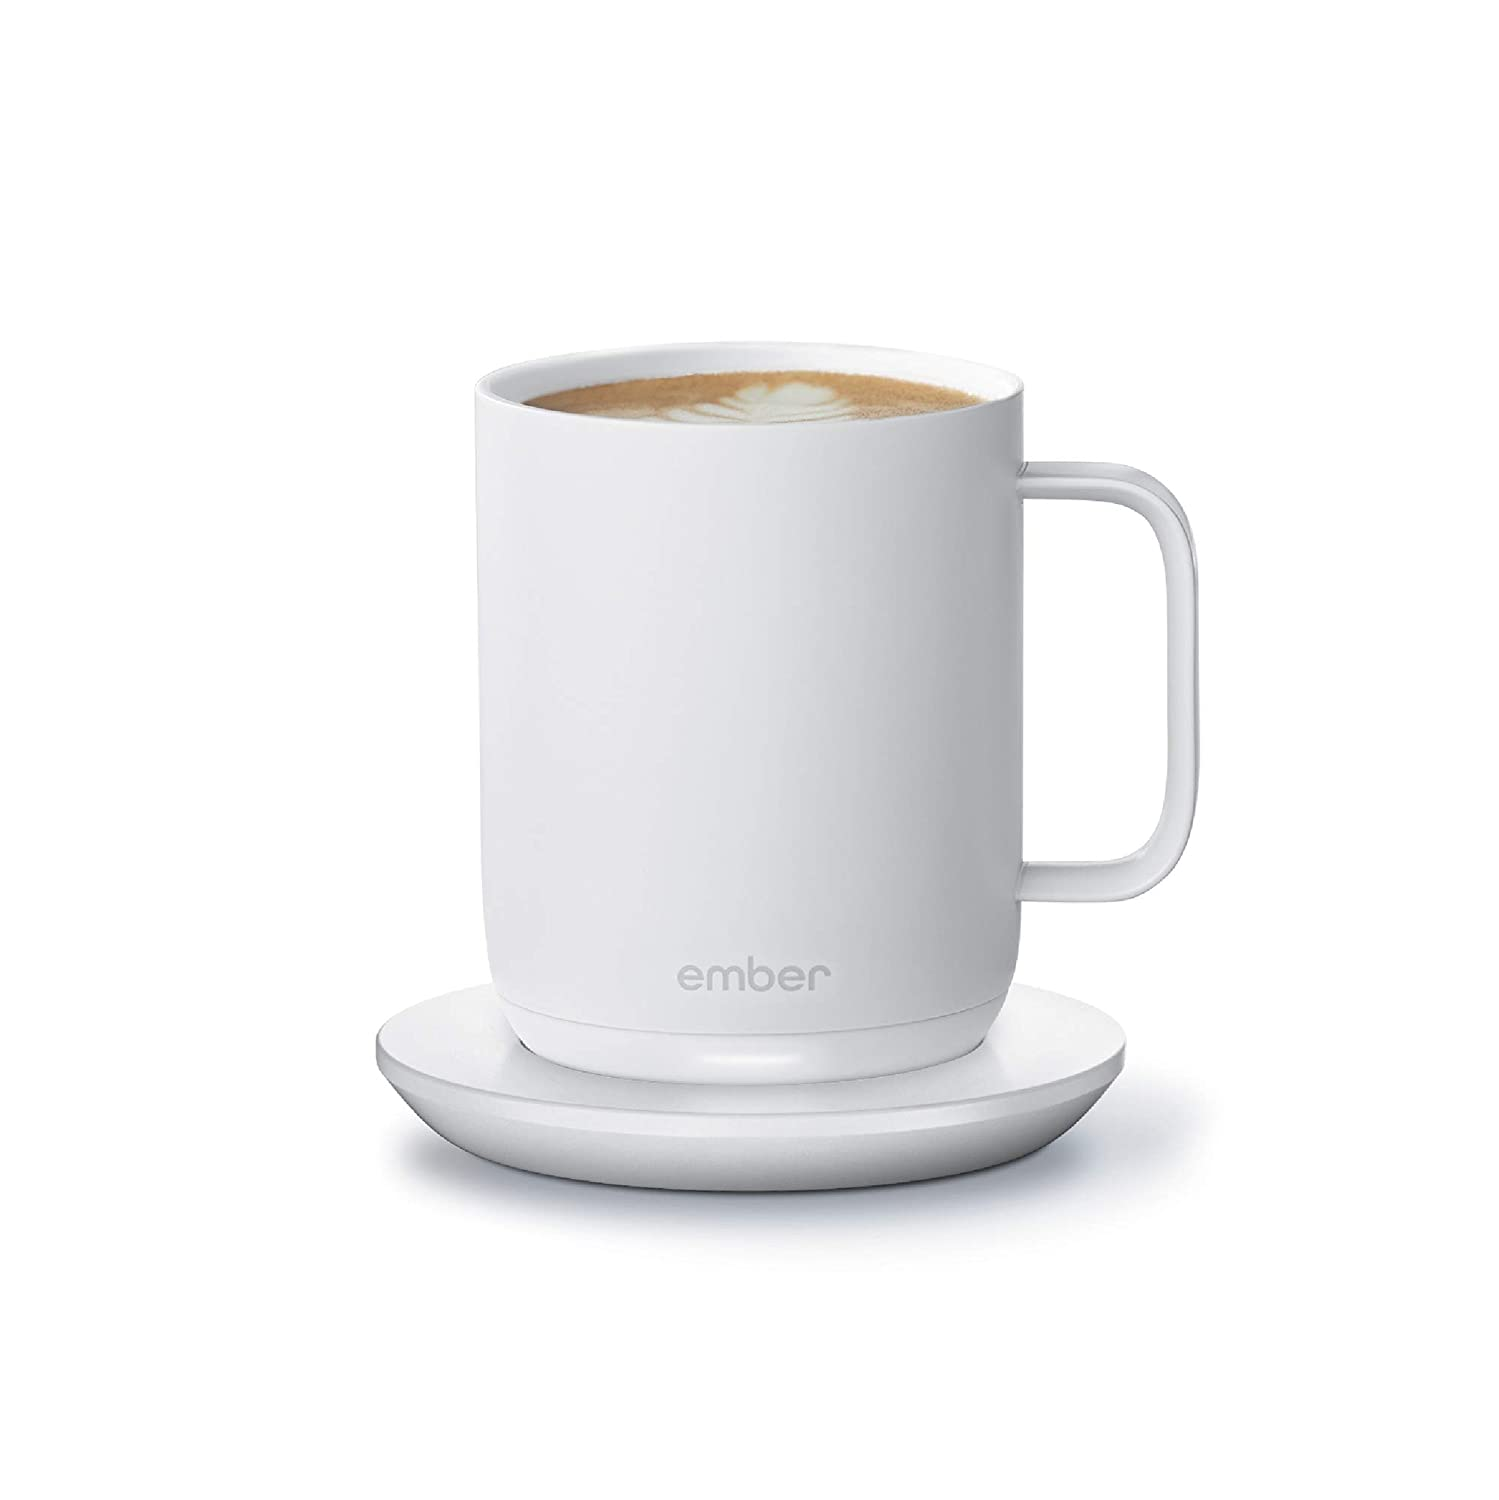 NEW Ember Temperature Control Smart Mug 2, 10 oz, White, 1.5-hr Battery Life - App Controlled Heated Coffee Mug - Improved Design